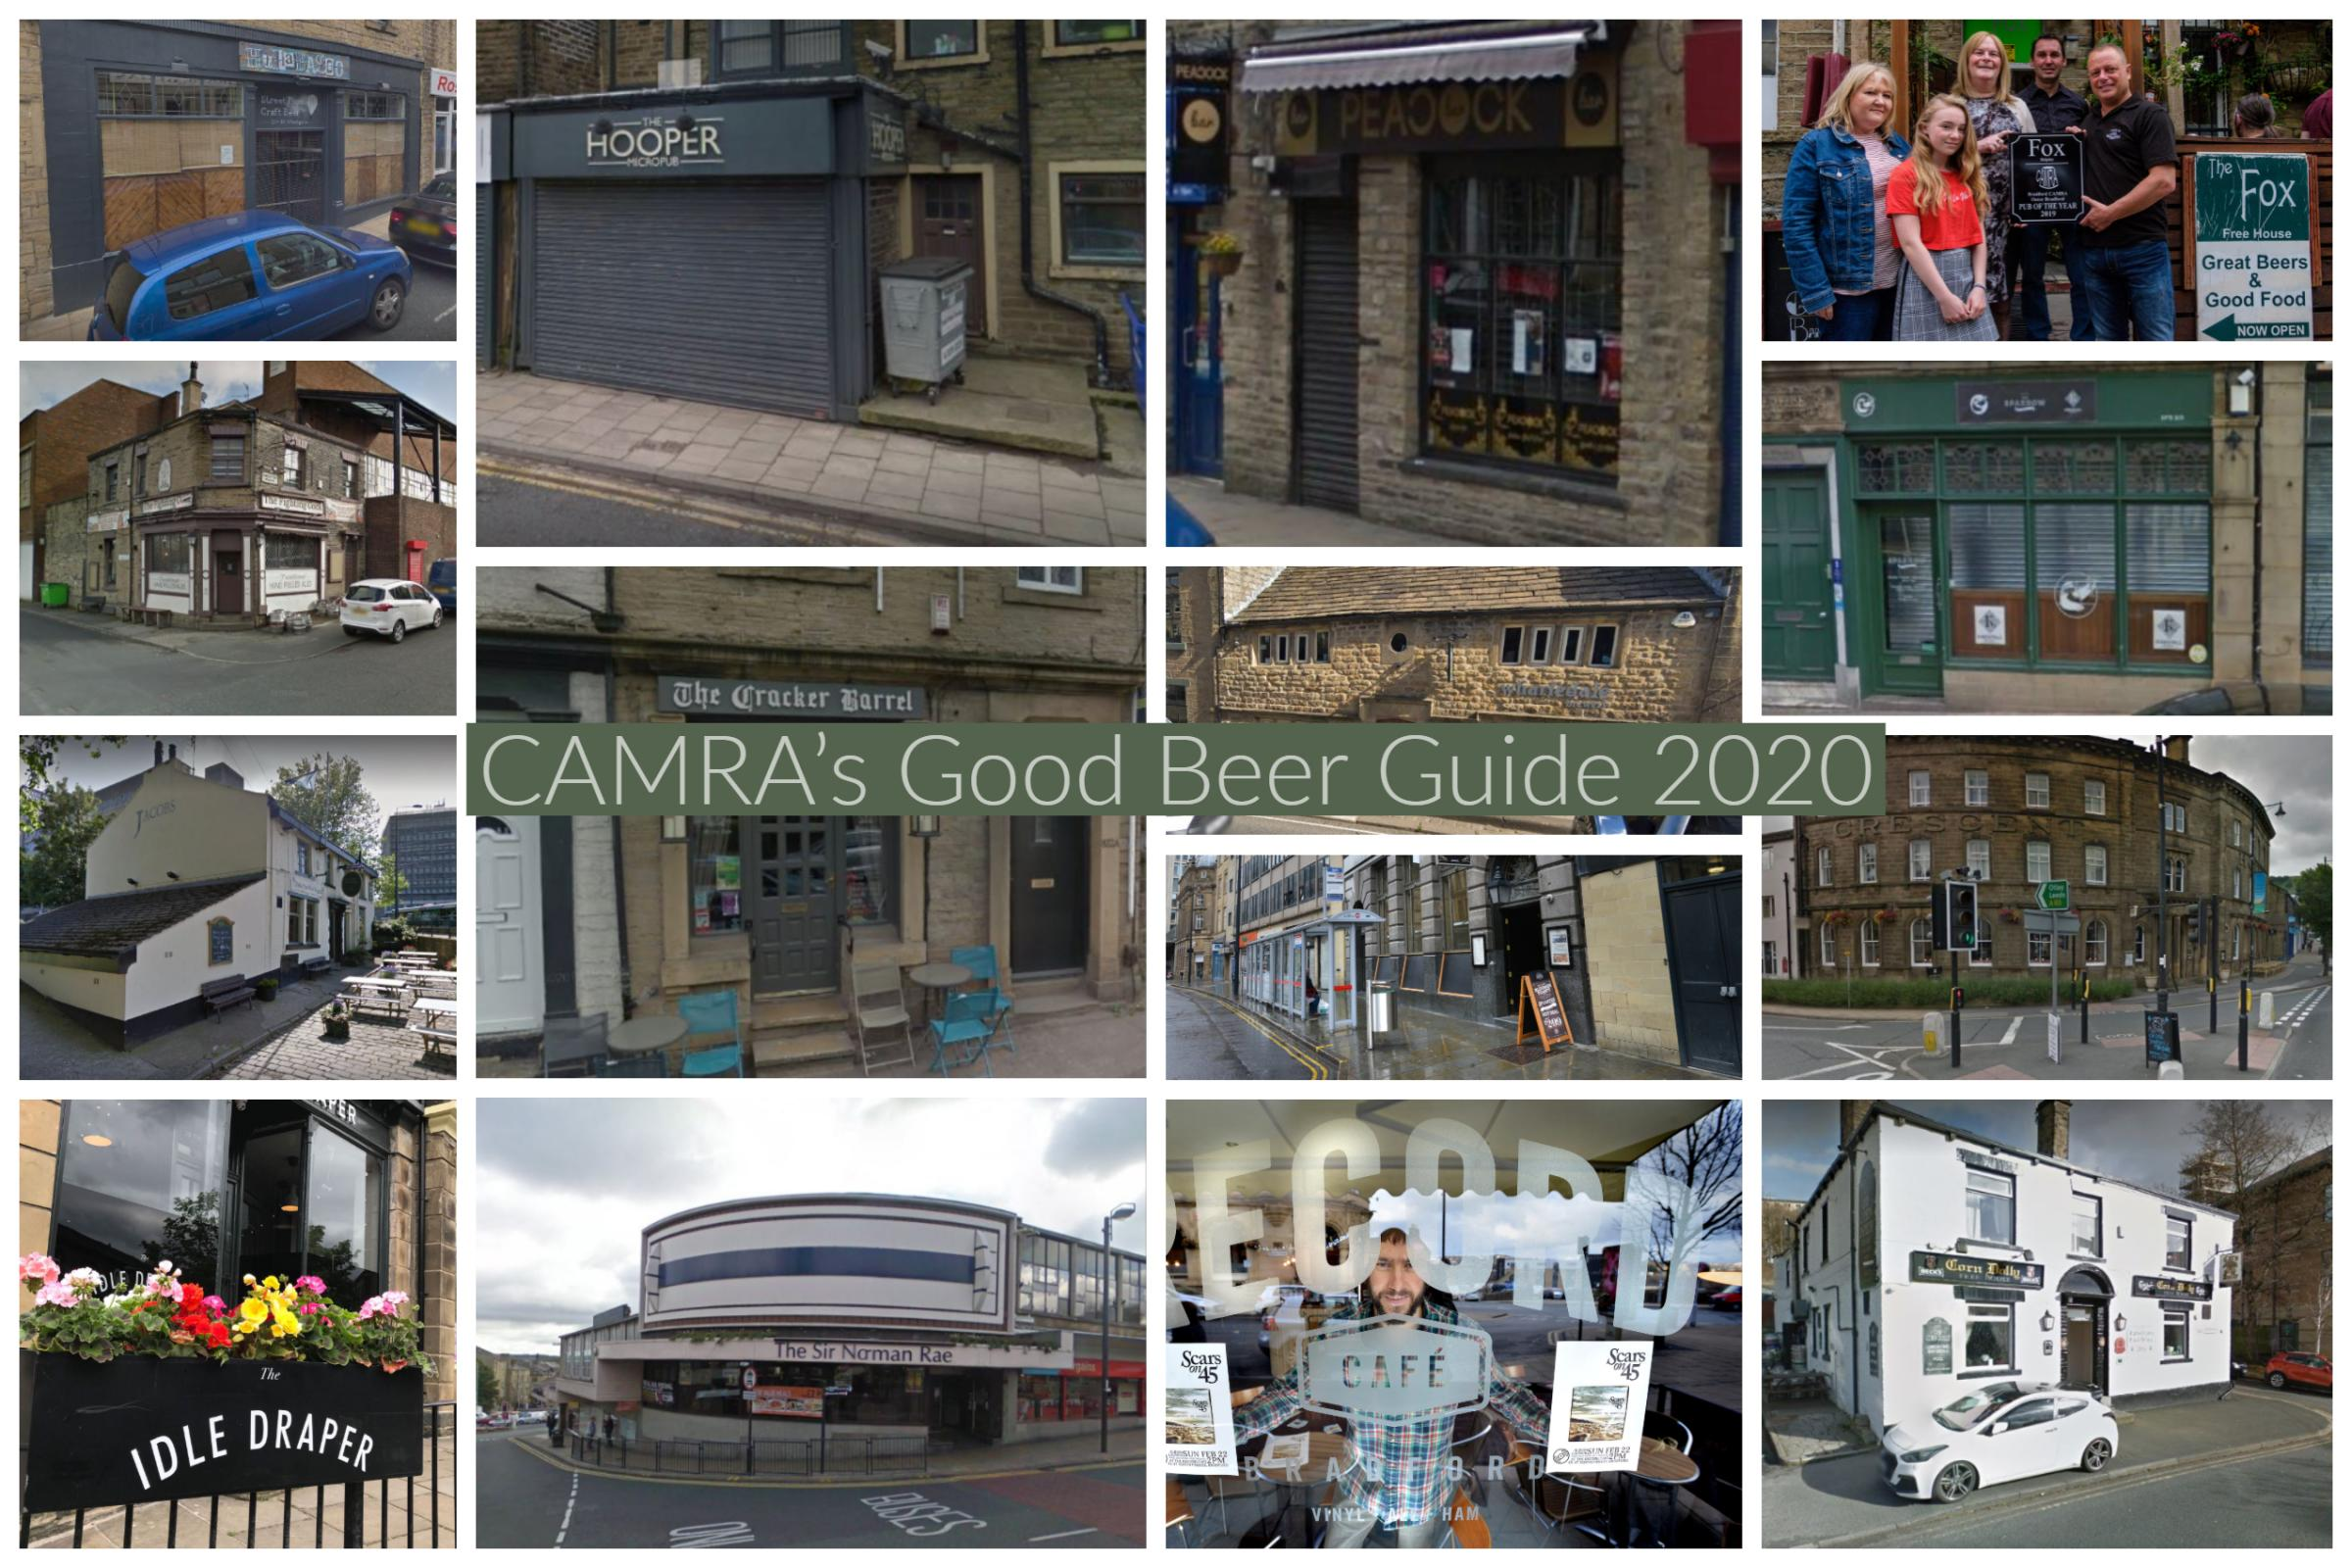 All the Bradford drinking spots in CAMRA's 2020 Good Beer Guide